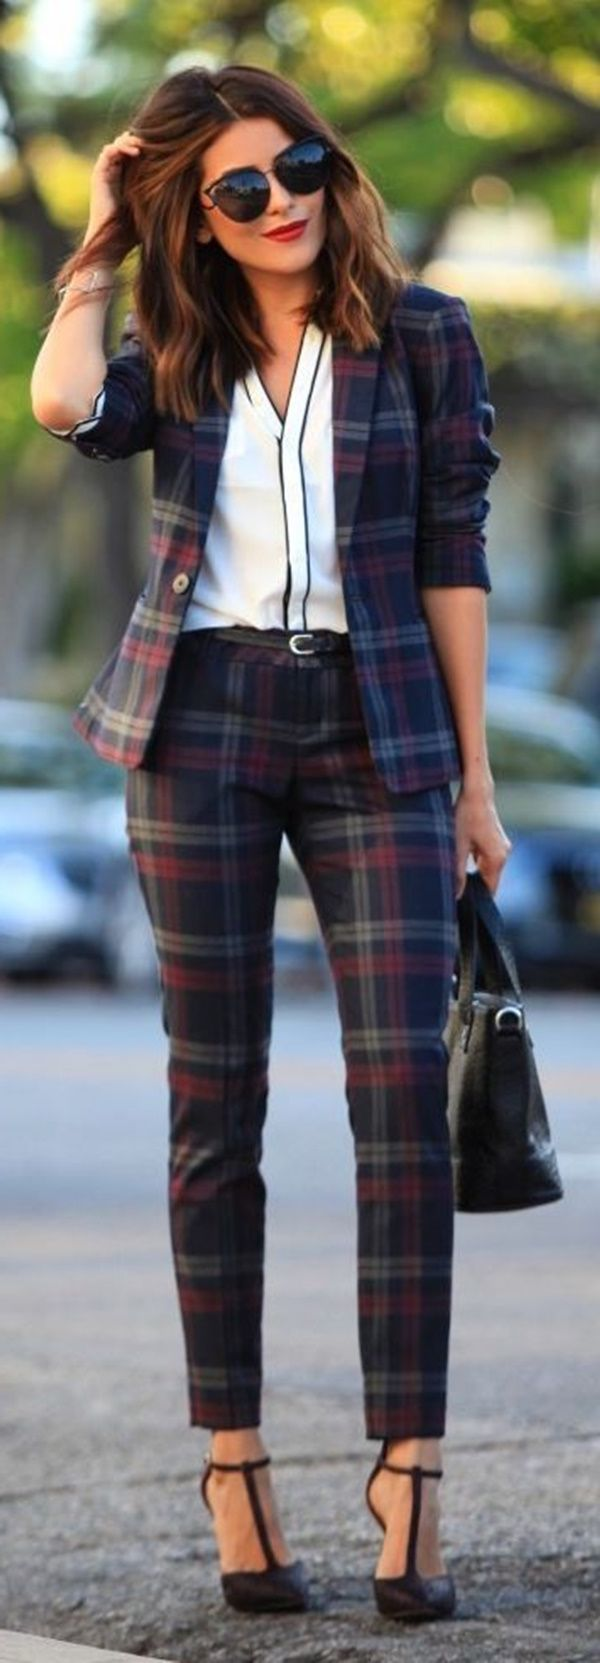 2018 Plaid Print Clothes For Women (10)